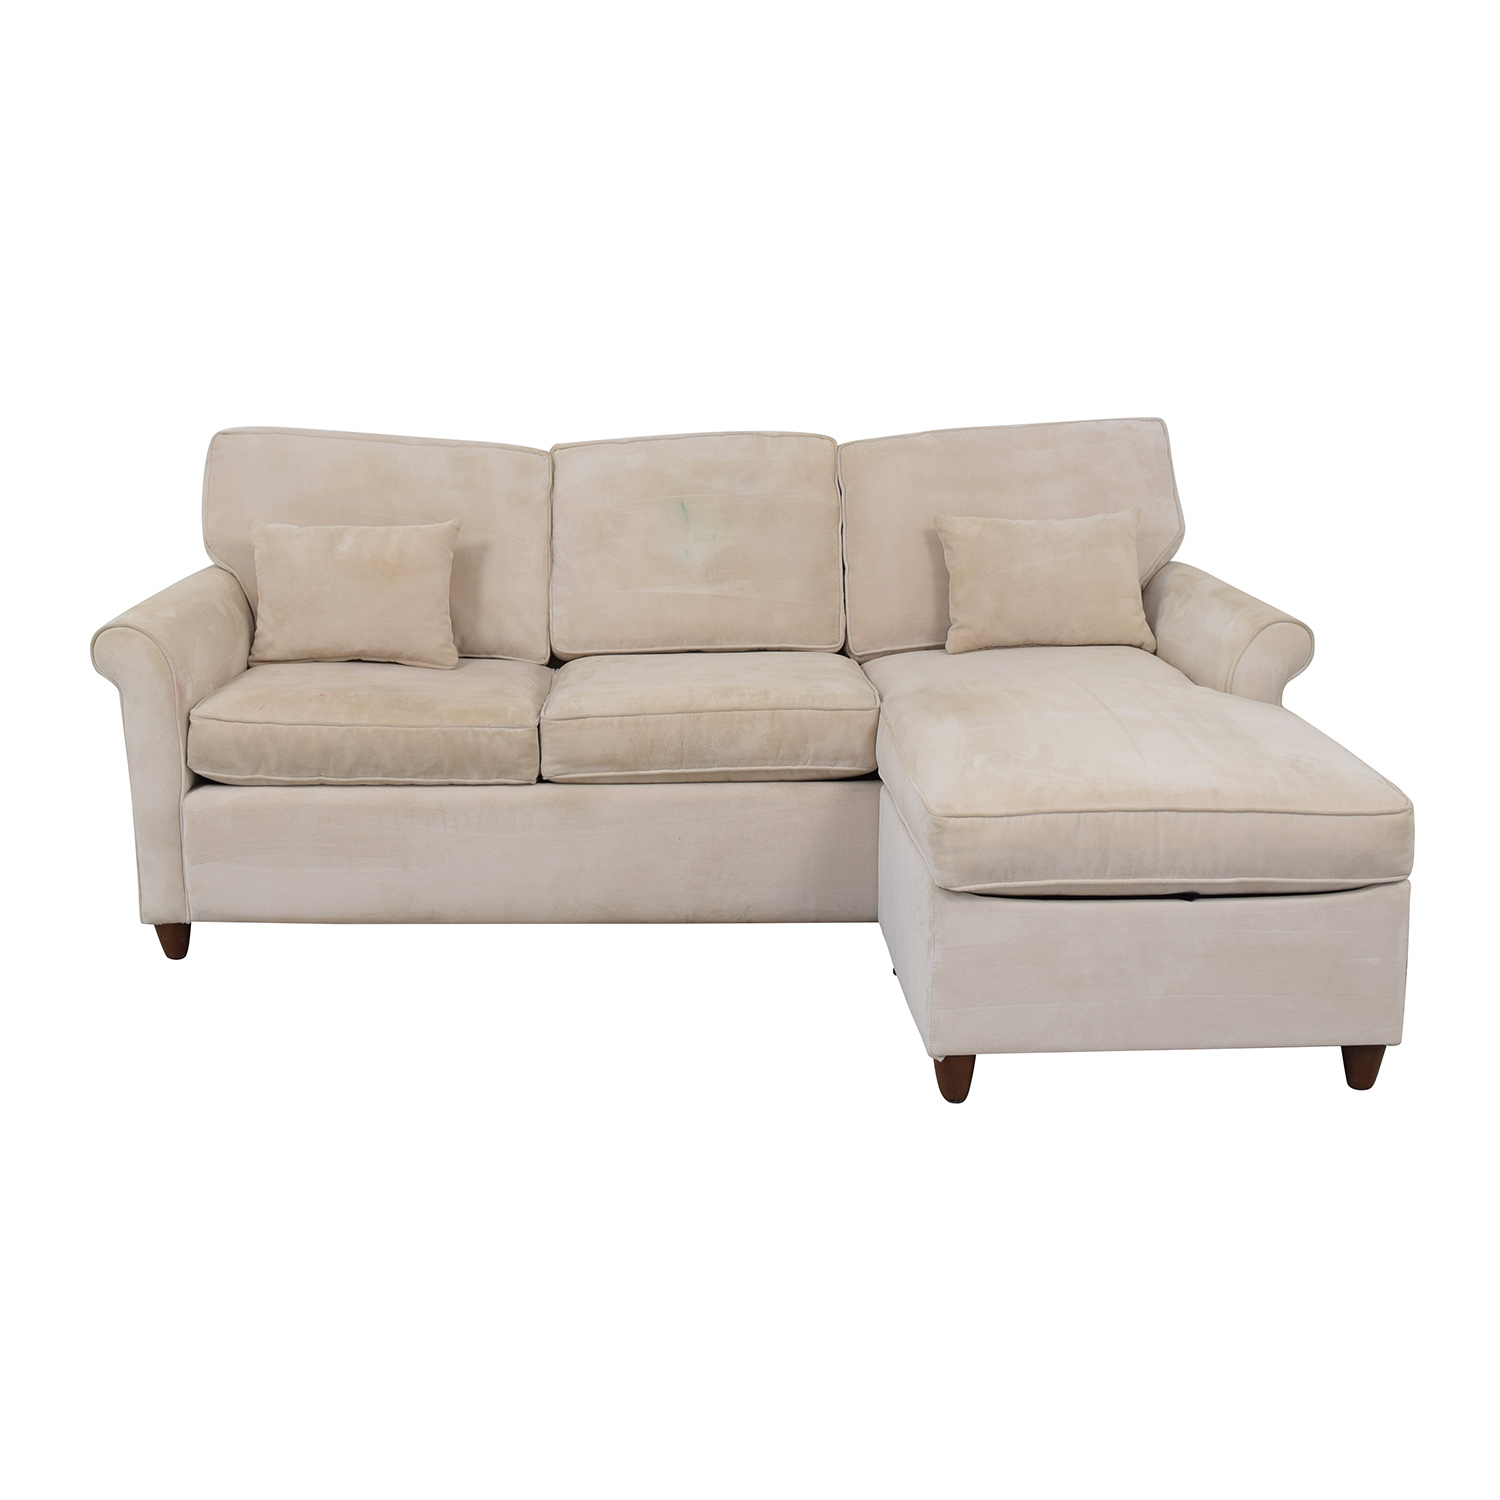 shop Macy's Macy's Beige Reversible Ottoman Chaise Sectional online